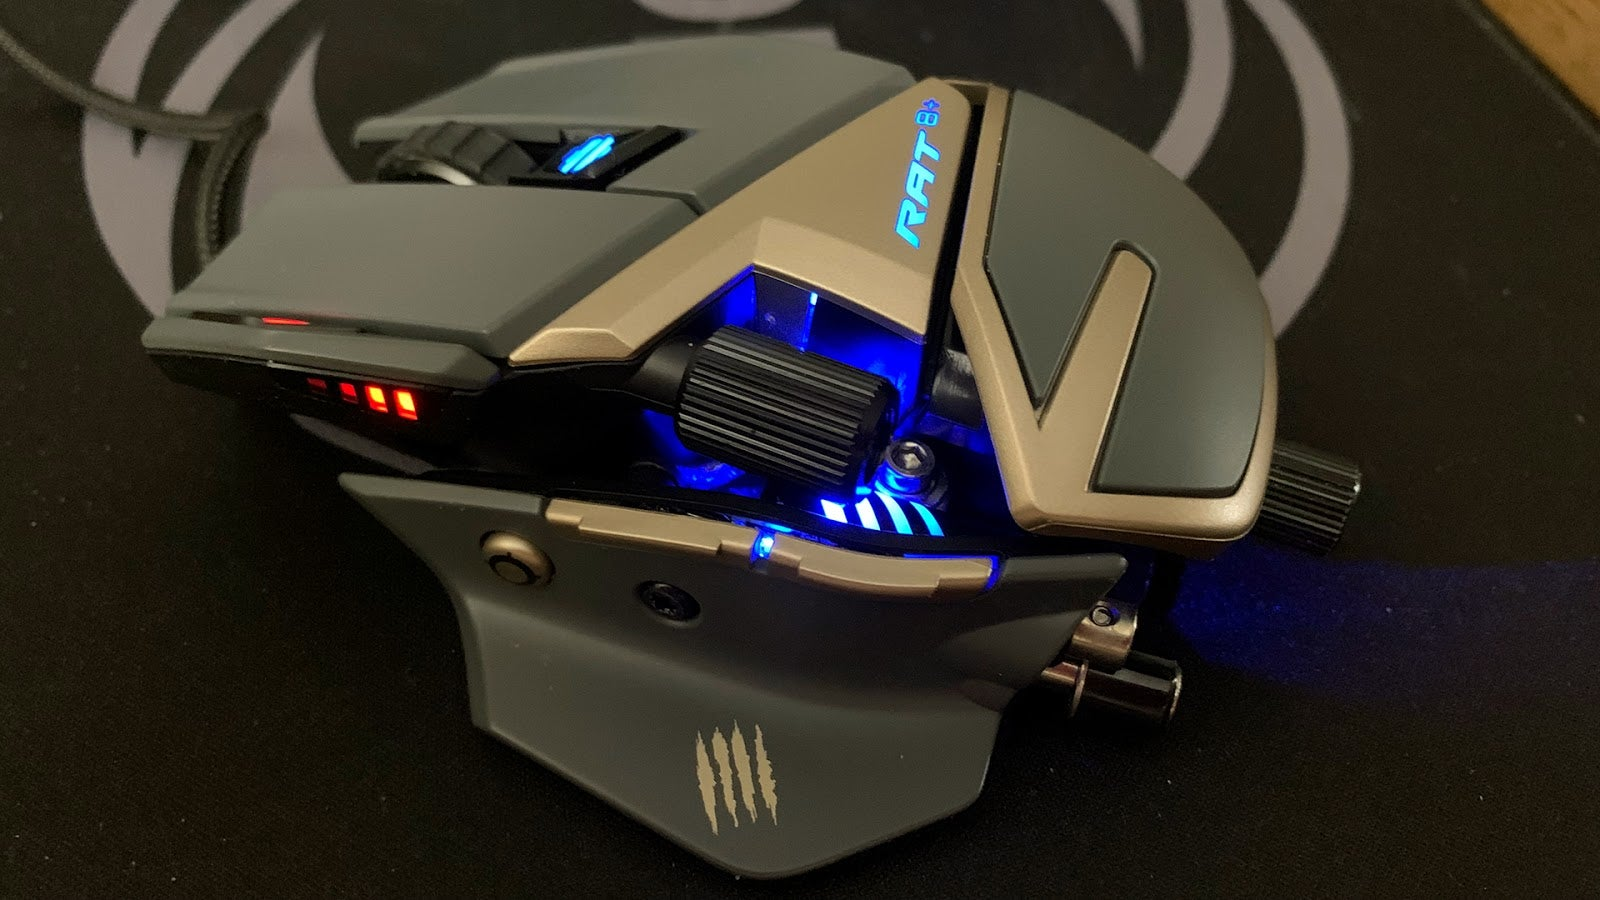 I Love Mad Catz's Bizarre Gaming Mice